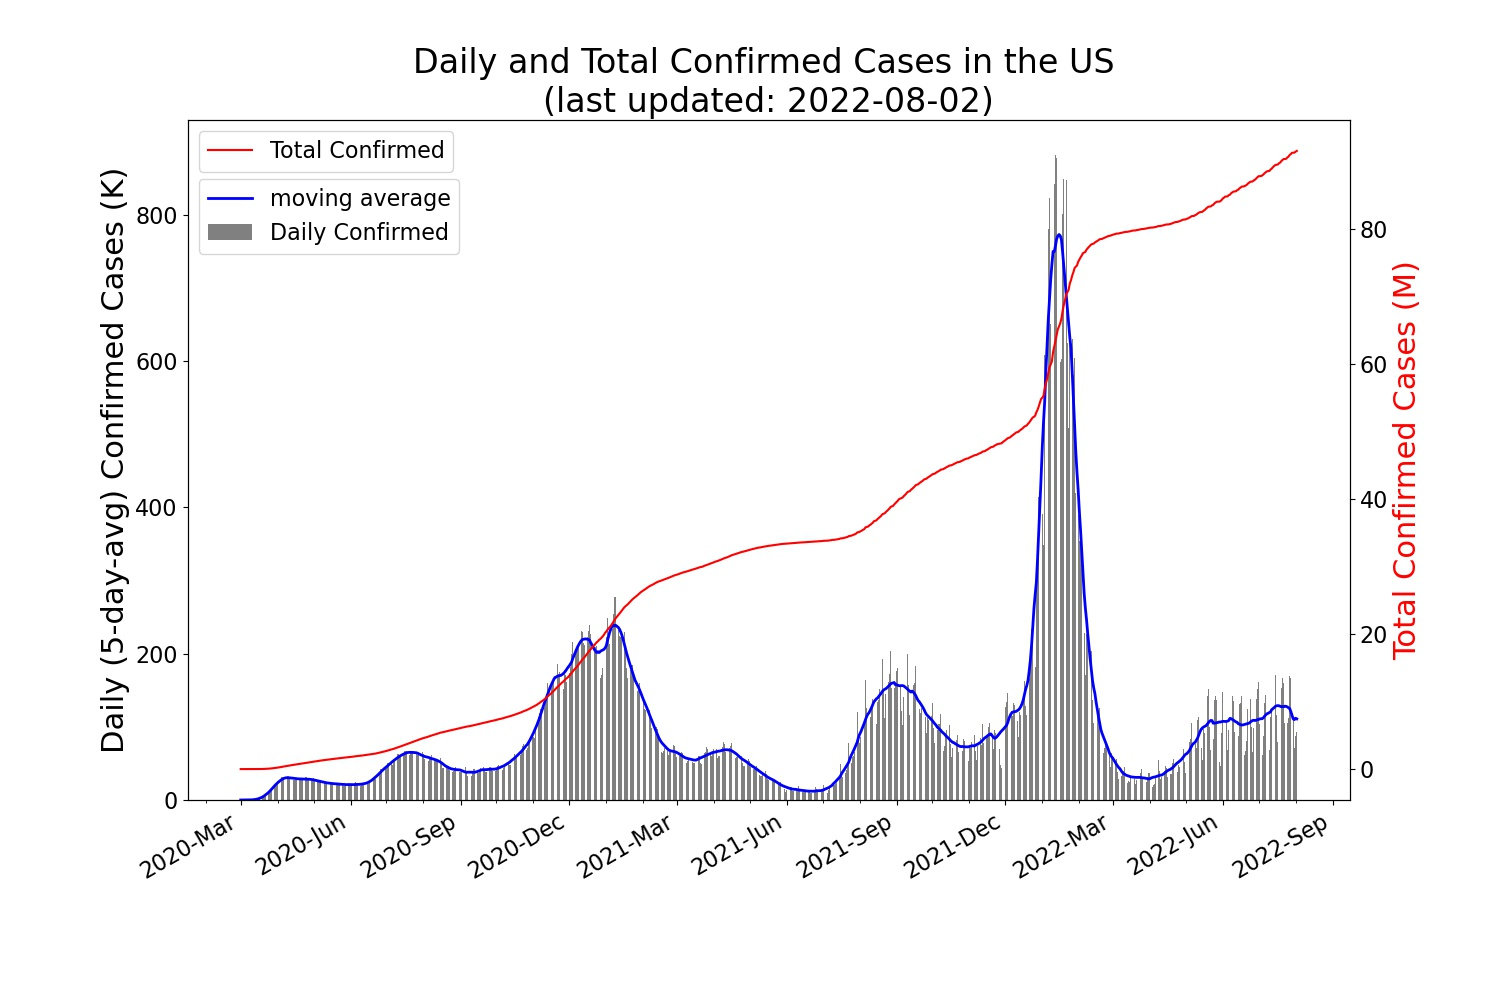 Trend of the daily/total confirmed COVID-19 cases in USA